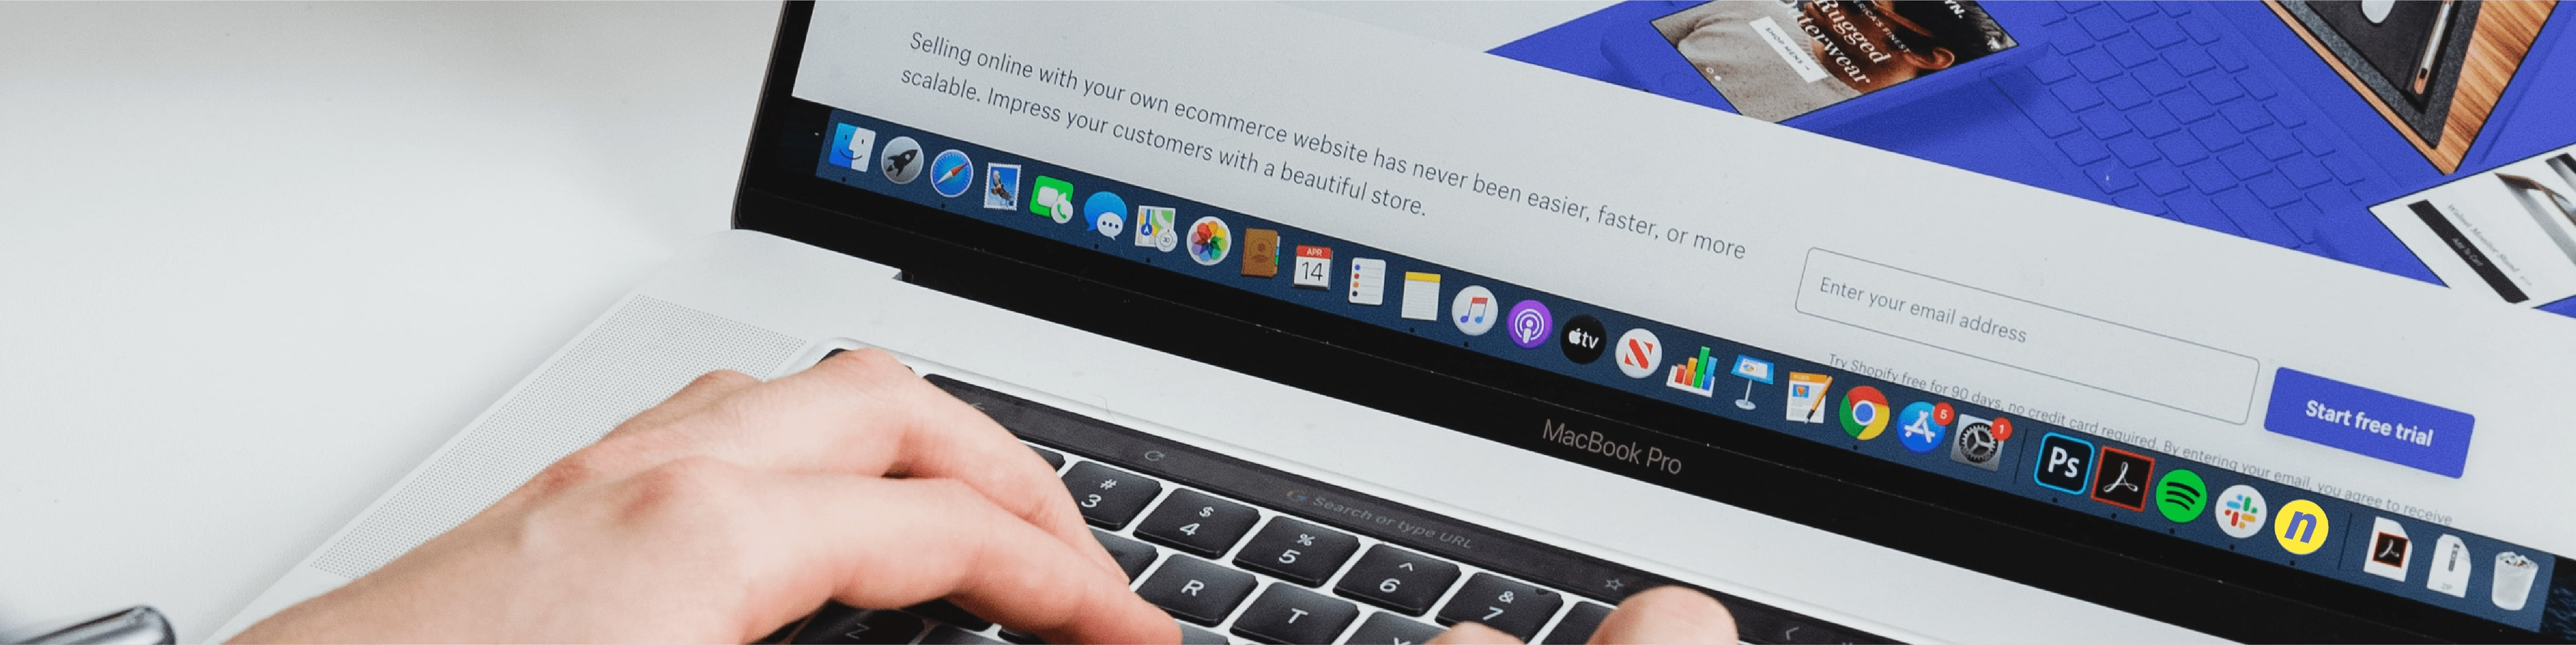 Web marketing banner showing hands typing on a MacBook Pro